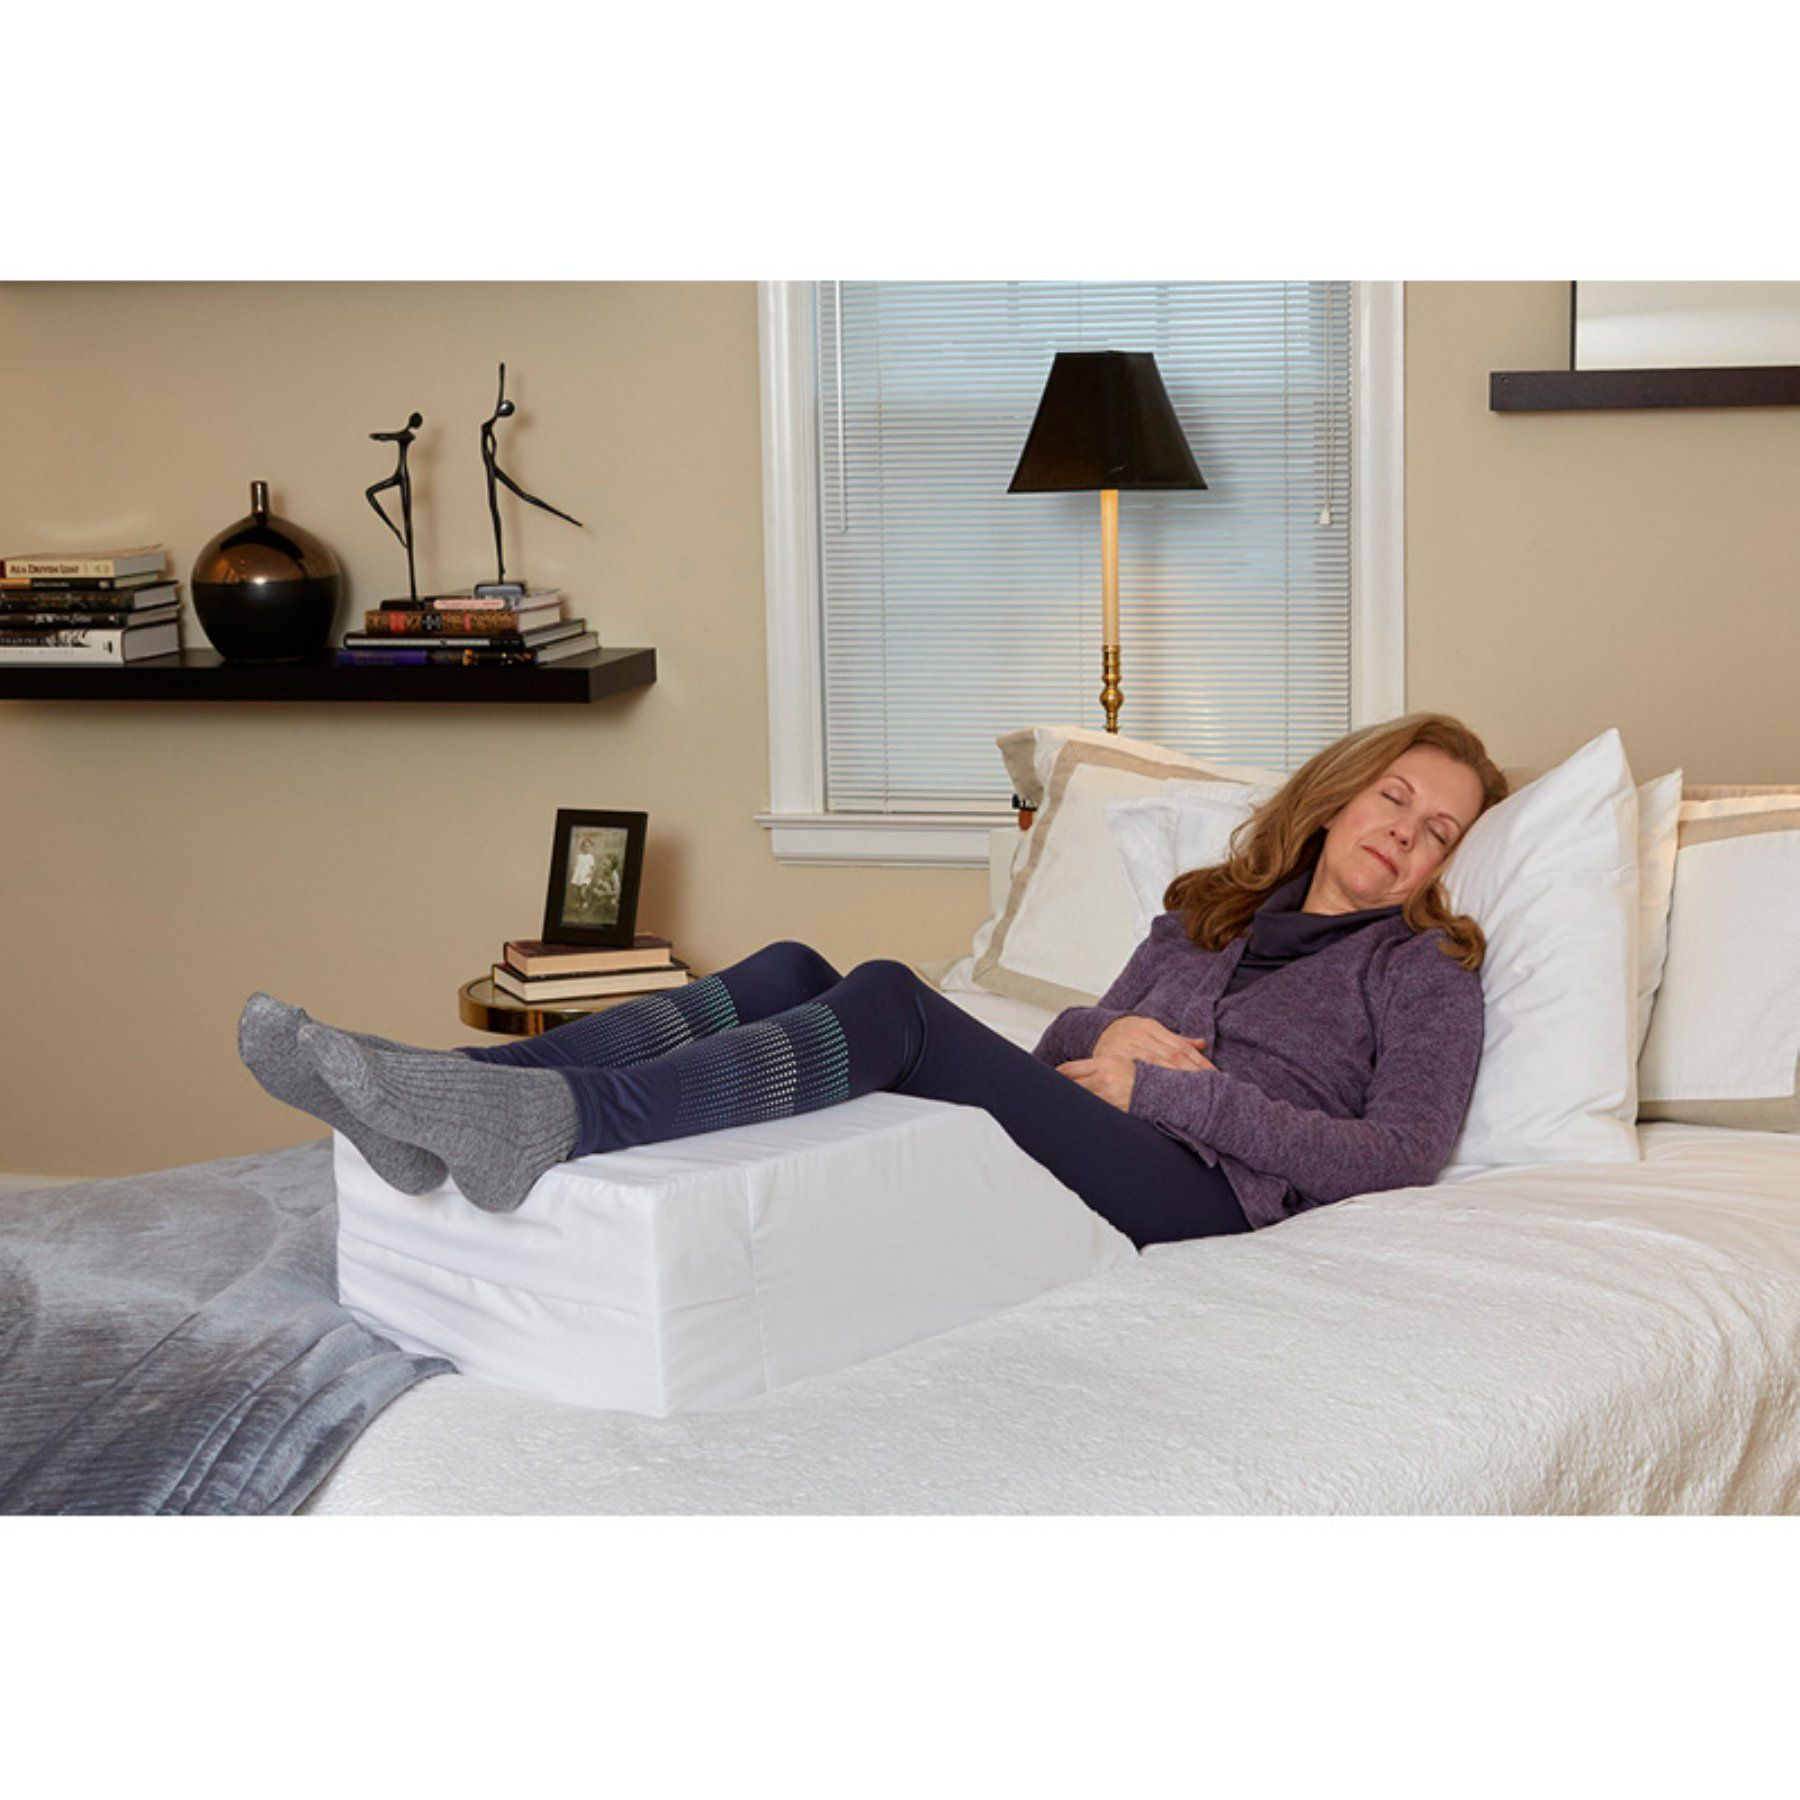 Hermell Elevating Leg Rest - Mj4020wrsb Products Foot Remedies Pain